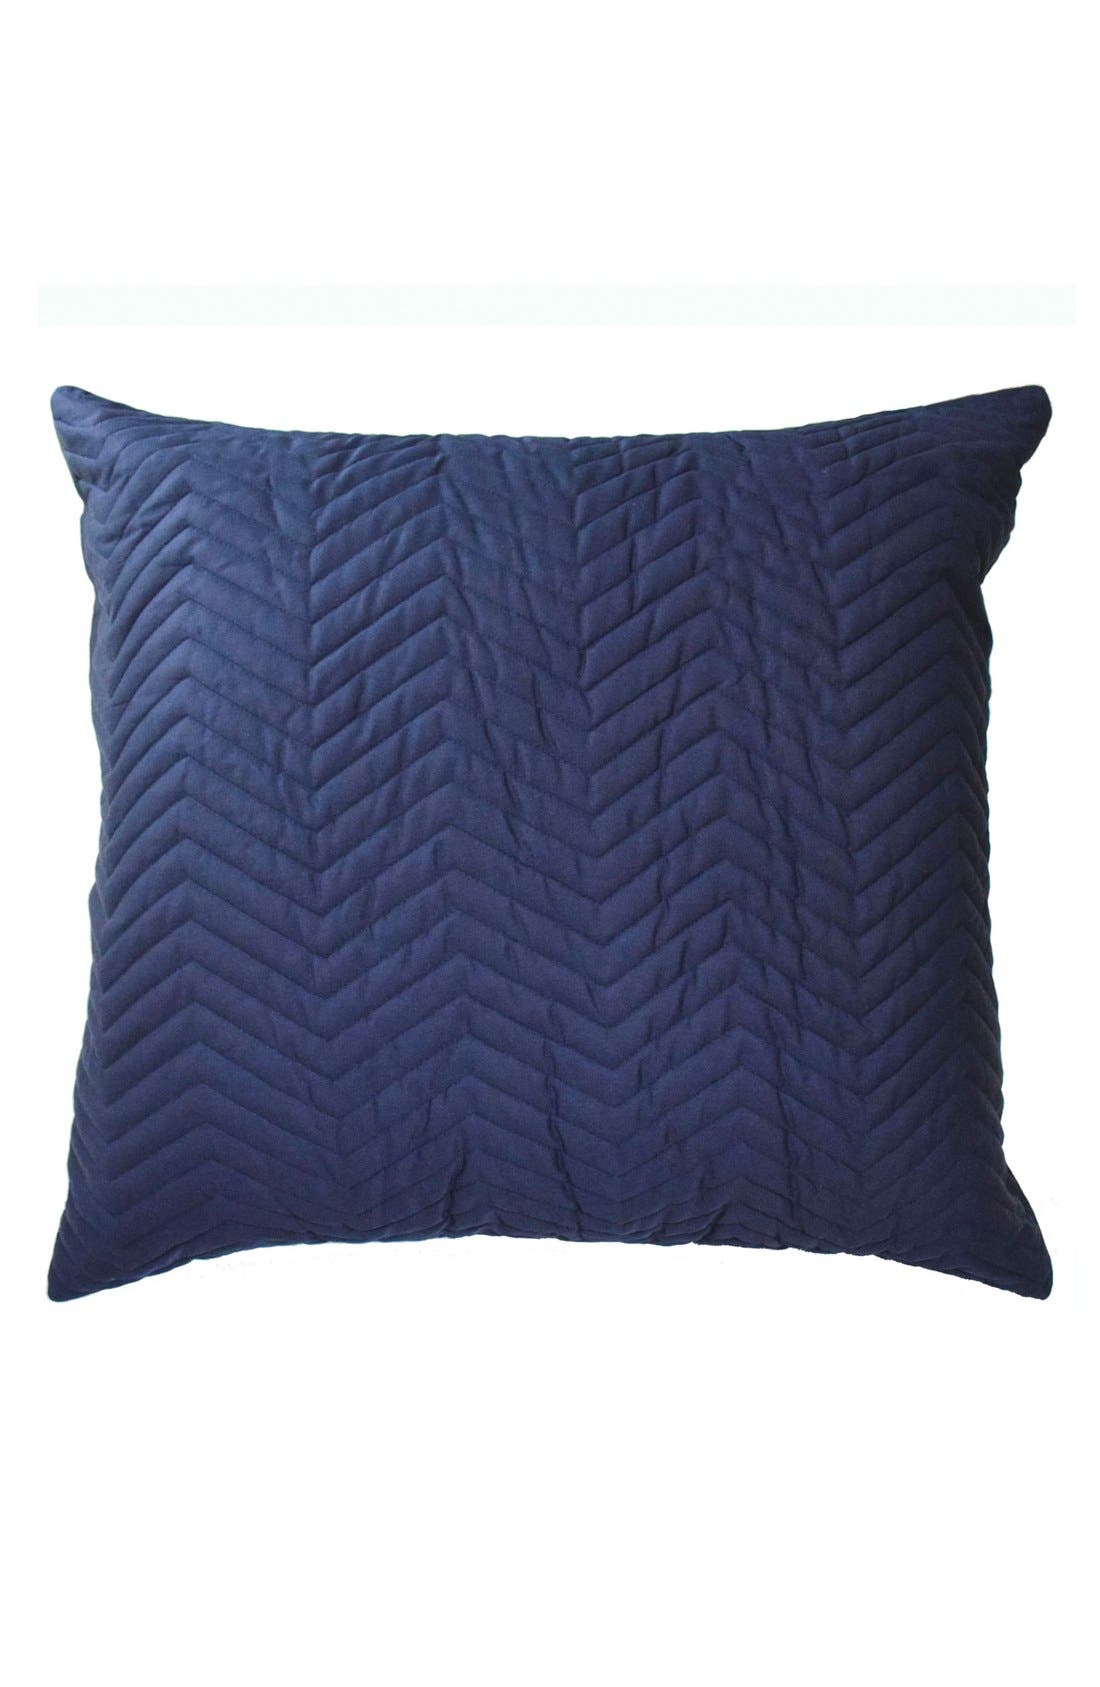 Main Image - Blissliving Home 'Francisco' Euro Sham